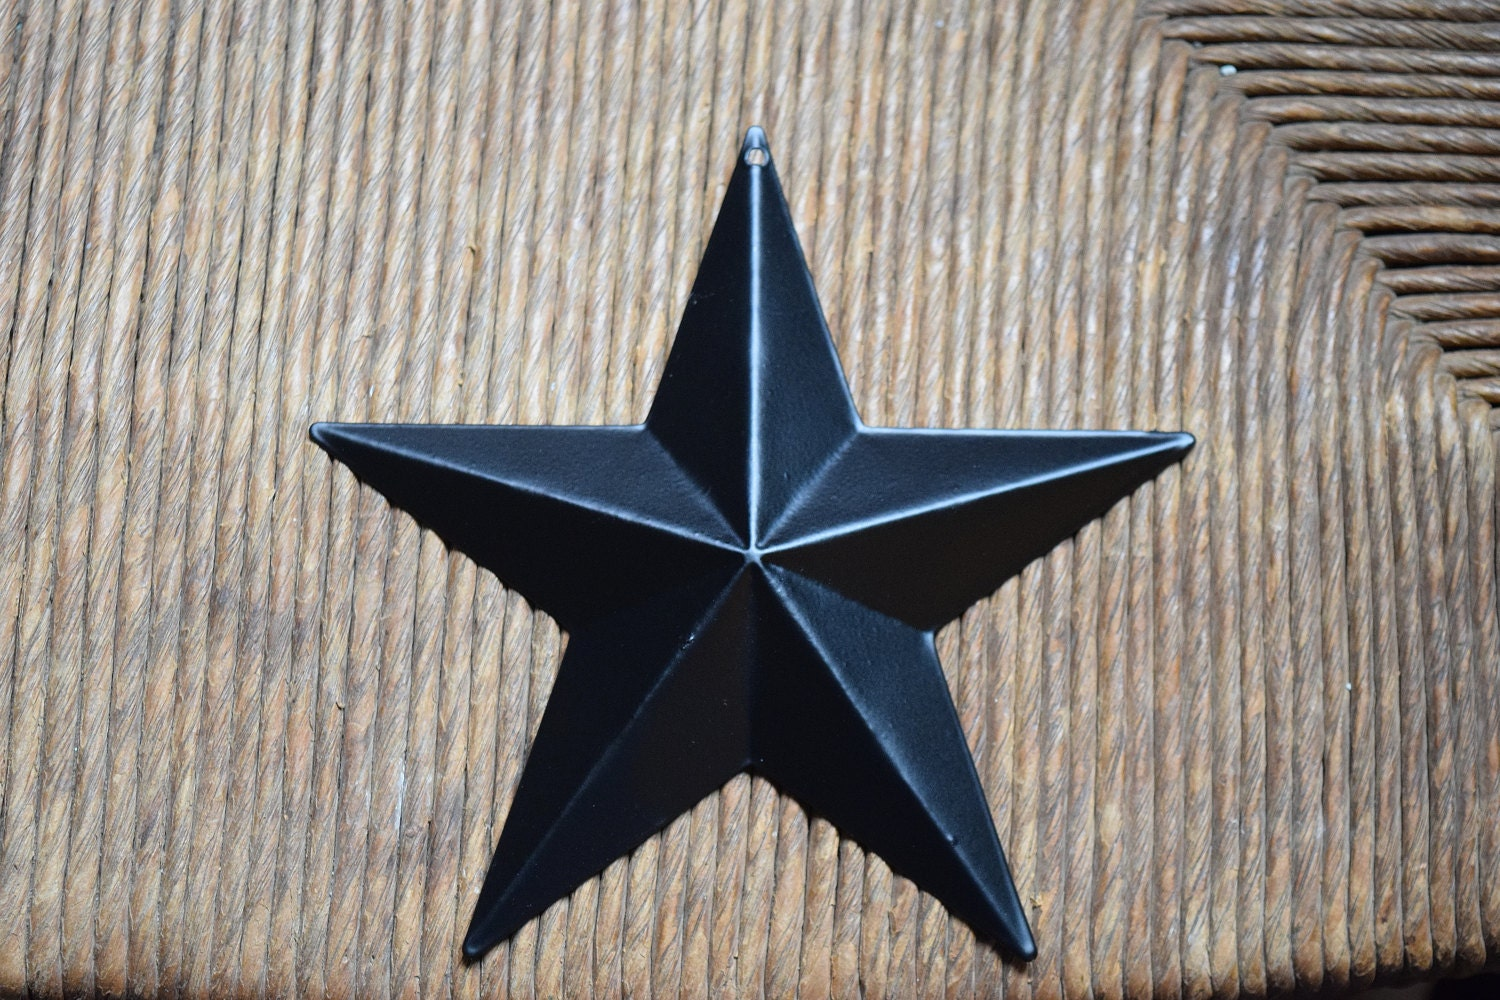 Rustic stars for crafts - Get Shipping Estimate